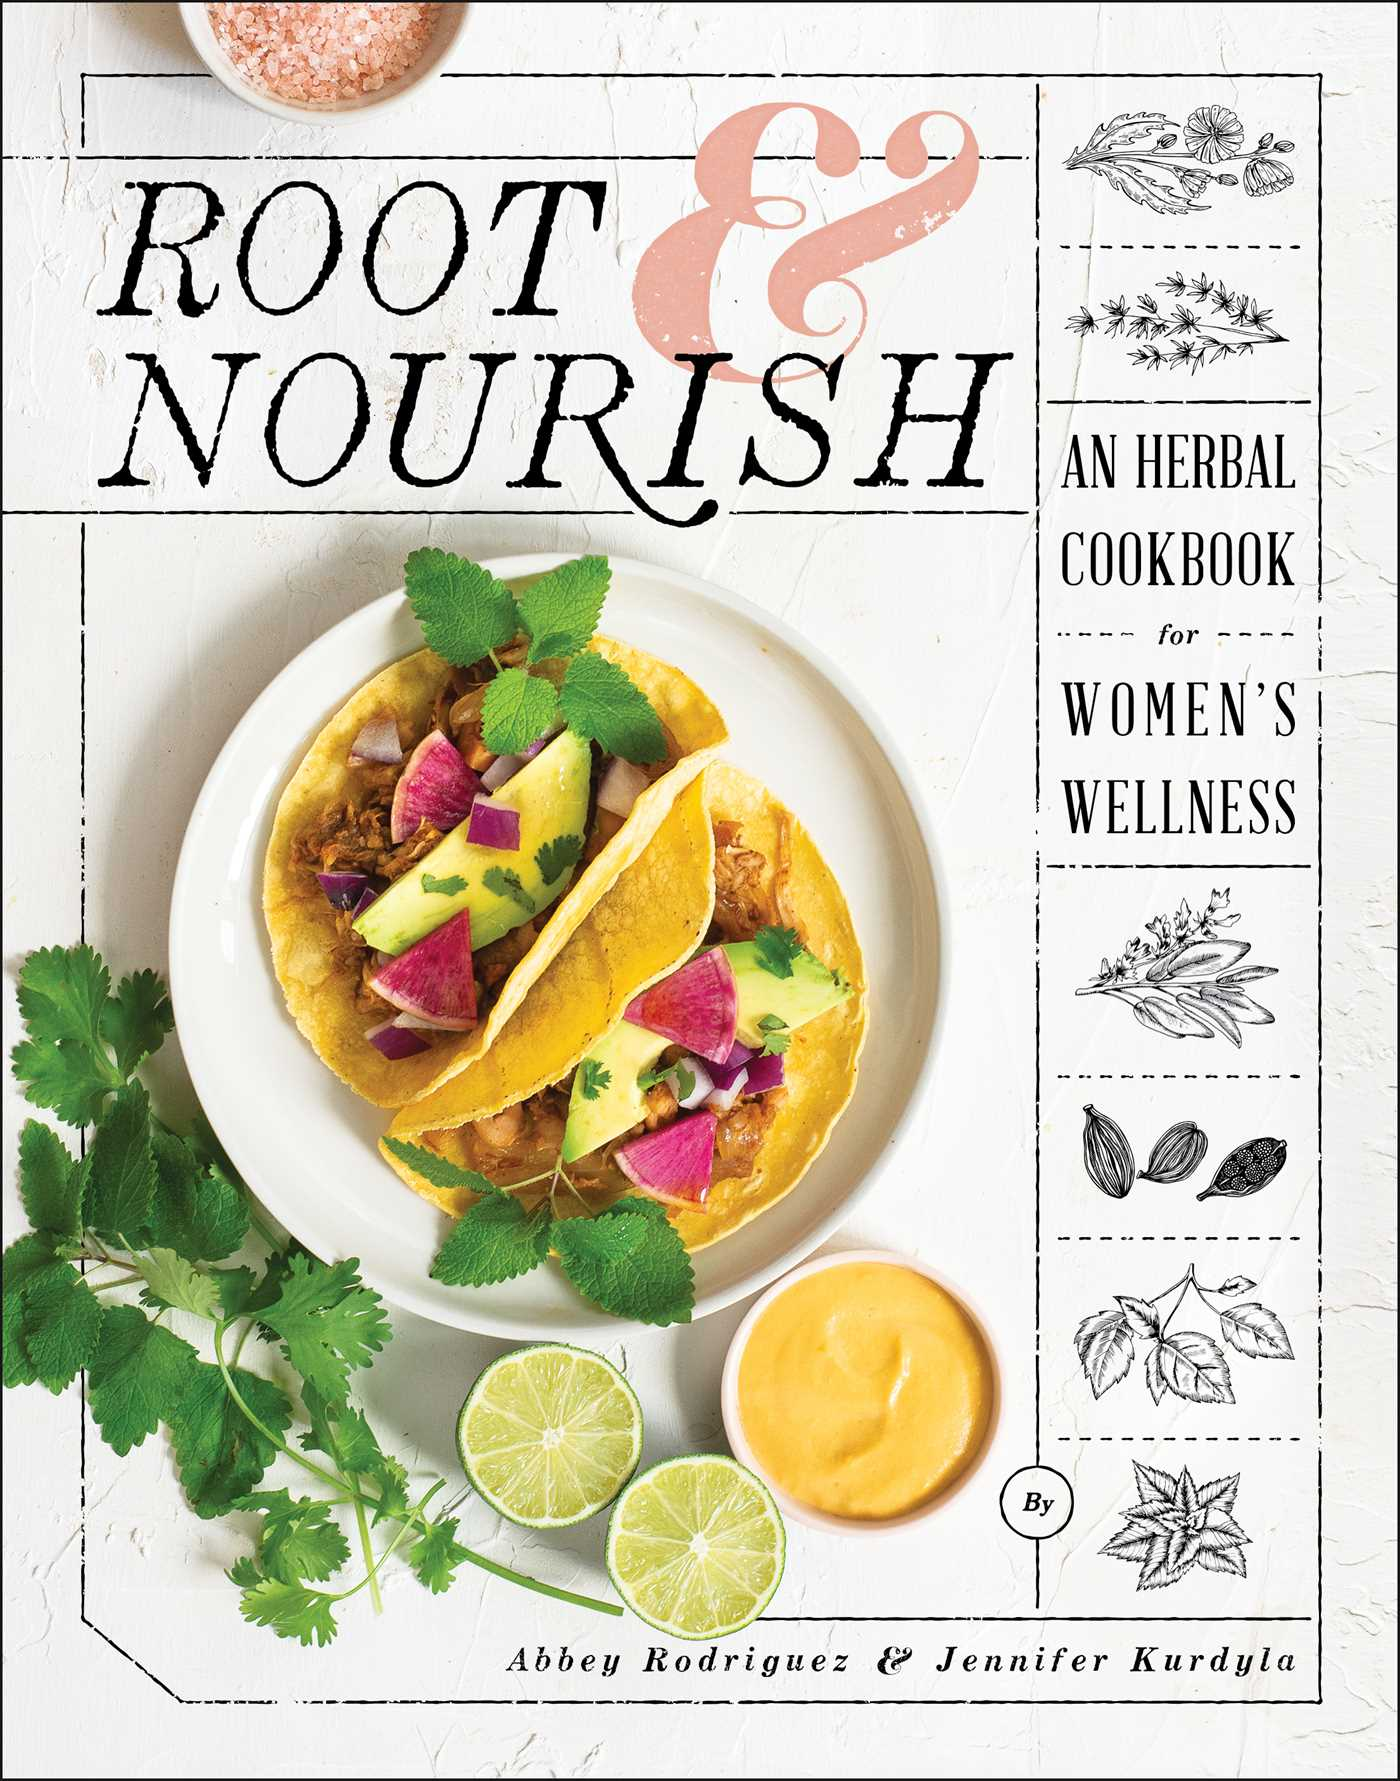 Root & Nourish: An Herbal Cookbook for Women's Wellness